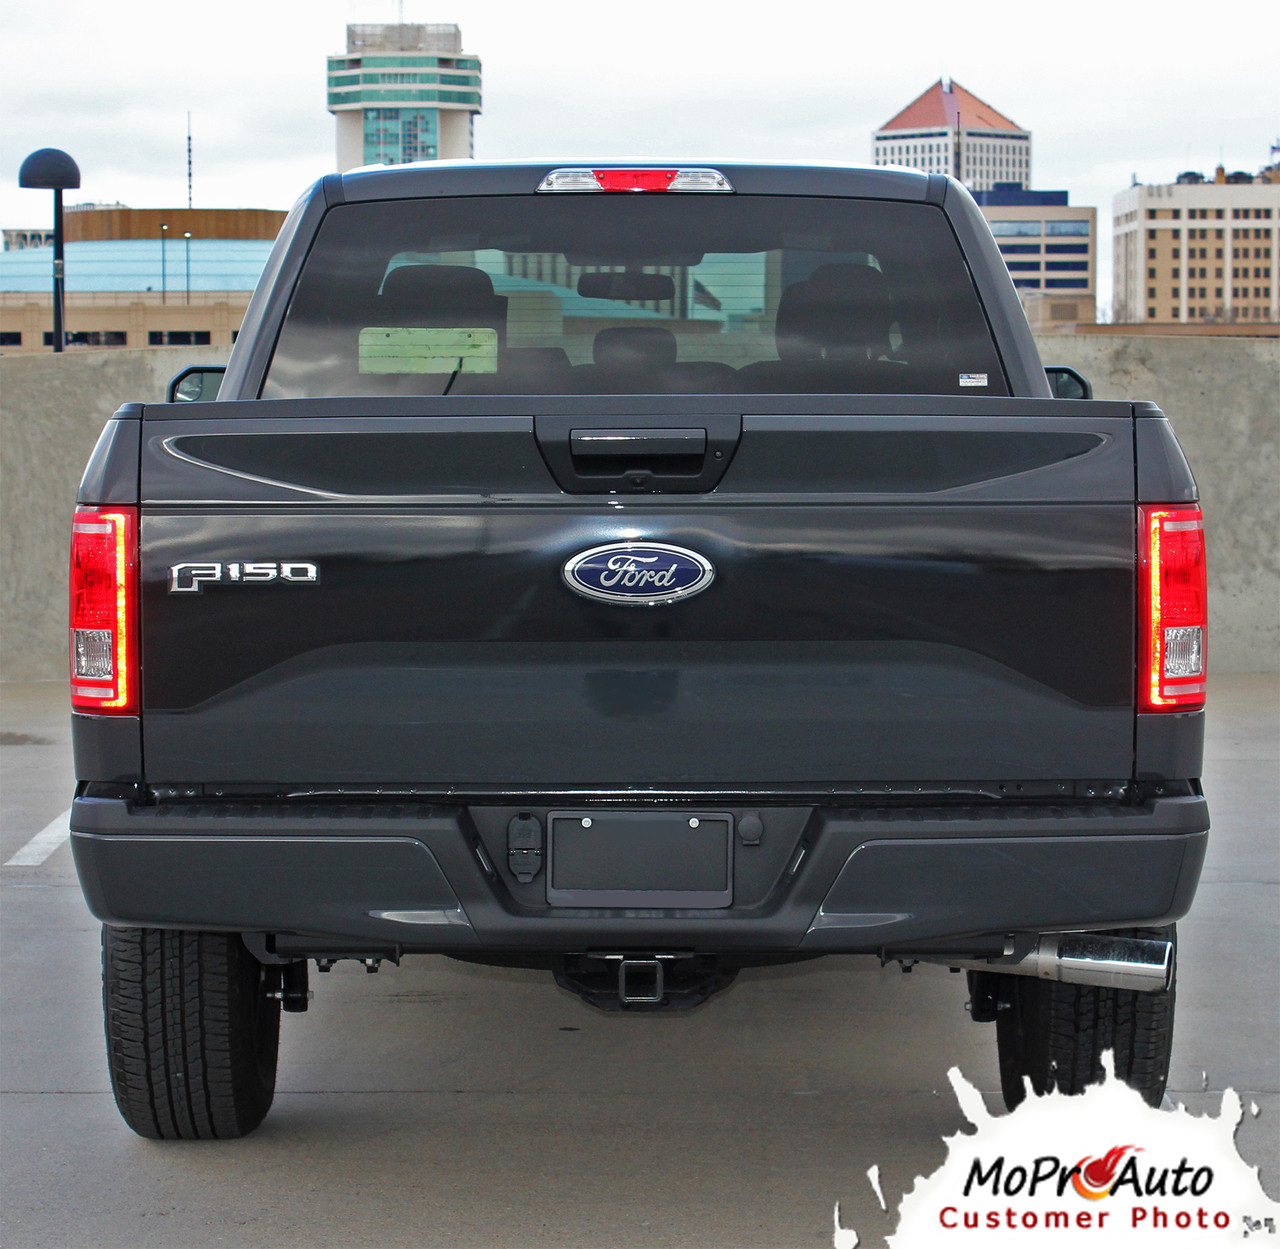 Reaper Tailgate Ford F 150 Tailgate Blackout Vinyl Graphic Decal Stripe Kit For 2015 2016 2017